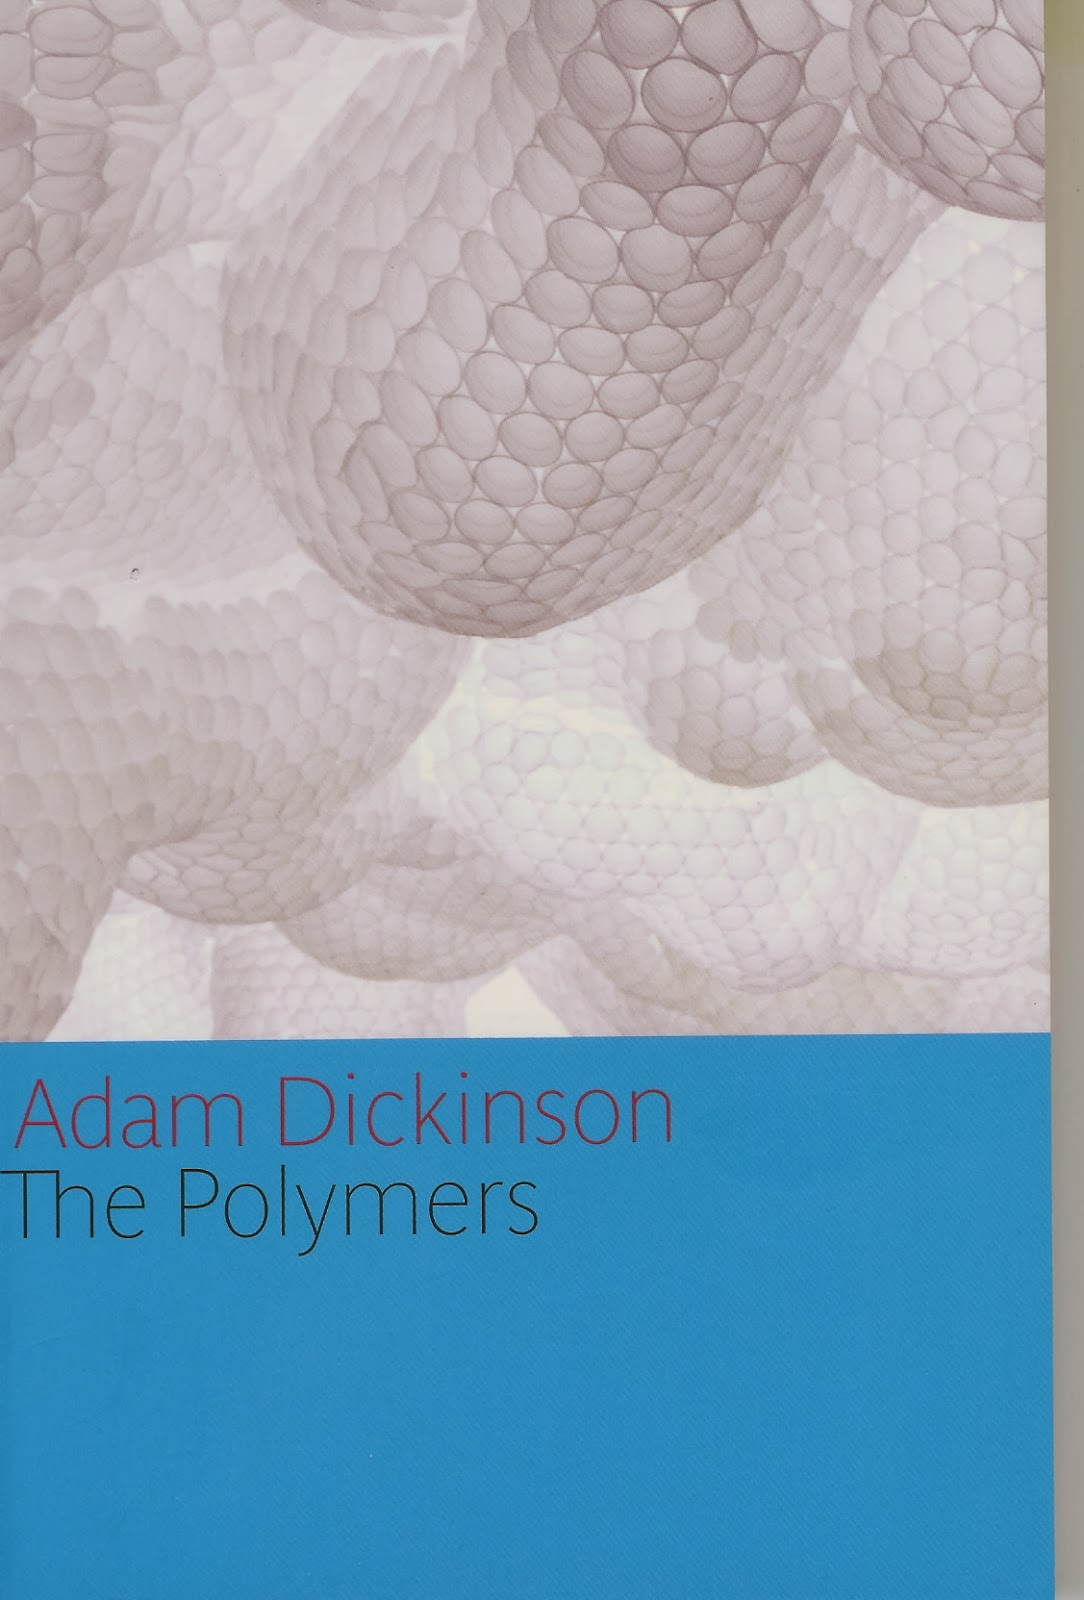 His Most Recent Collection, The Polymers (House Of Anansi Press, 2013), Was  A Finalist For The 2013 Governor Generalu0027s Award For Poetry.